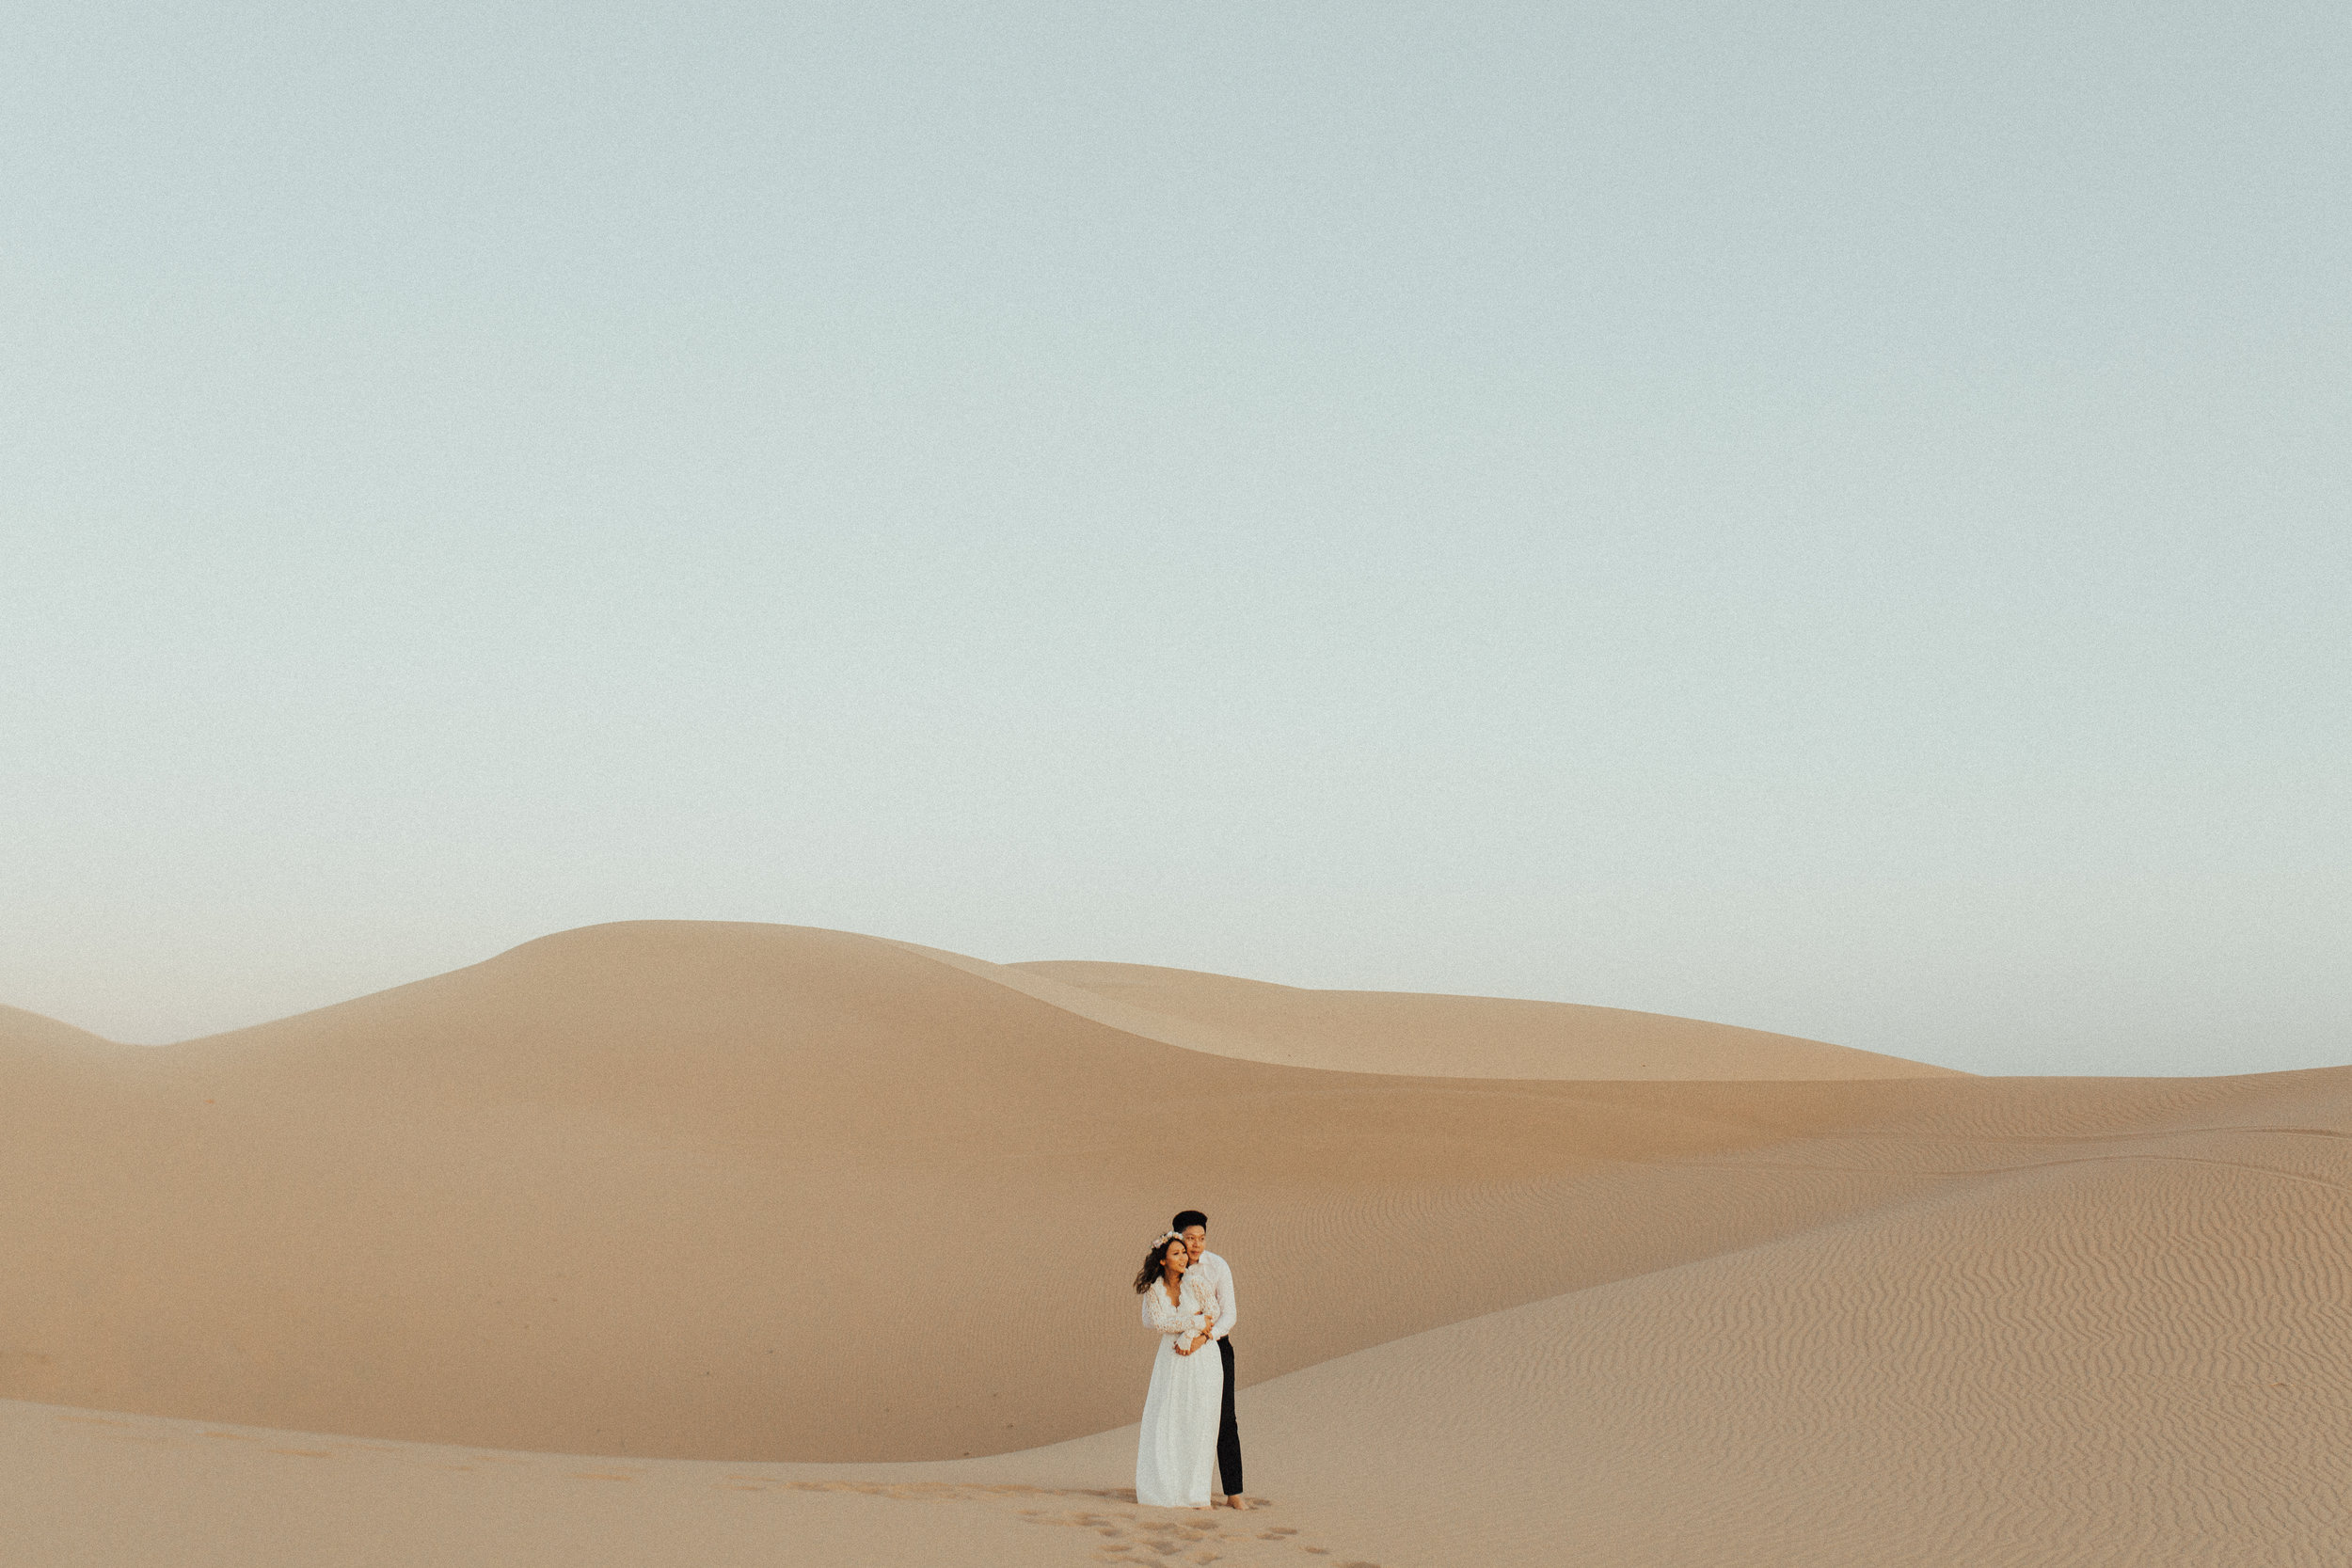 SoCal Elopement Photographer Rachel Wakefield Joshua Tree Sand Dunes Socal desert April 17 2019-6.jpg